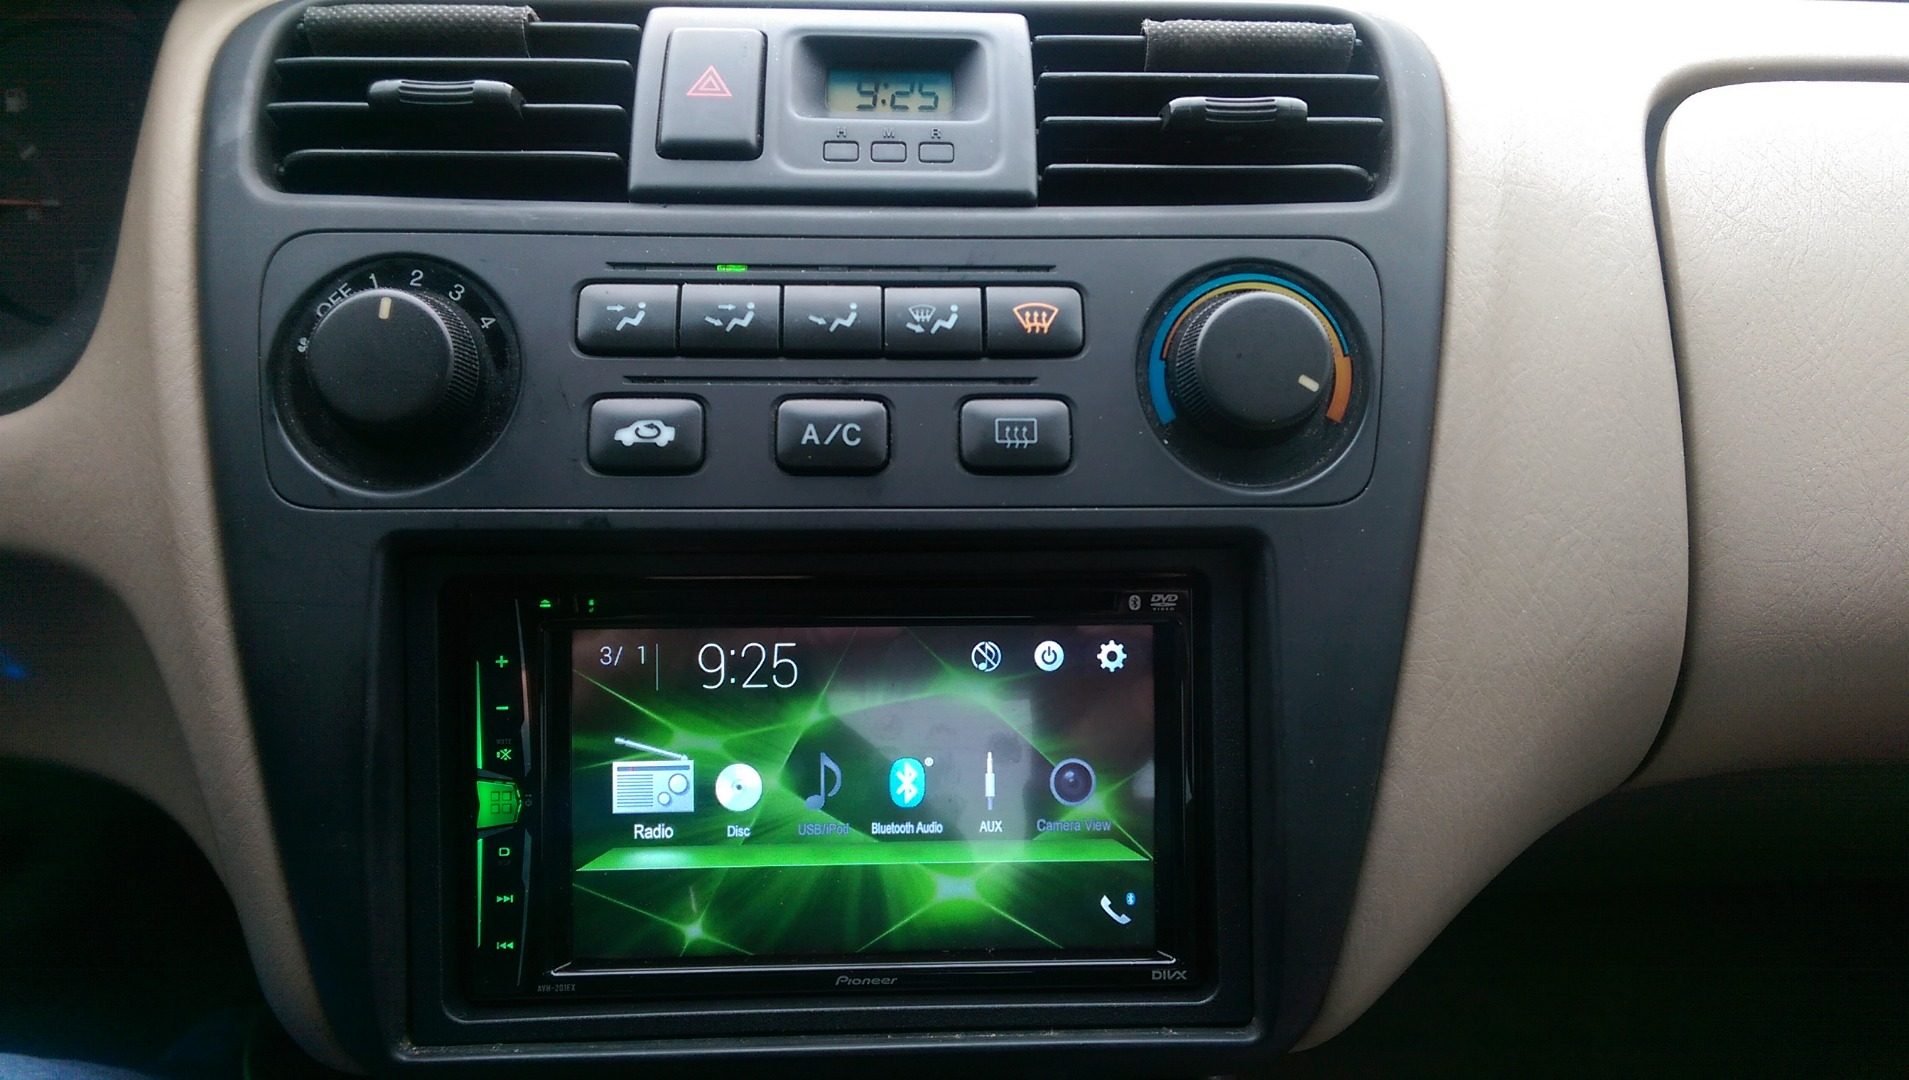 Wiring Diagram For Accele Rvclpmb Receivers Car Audio Video